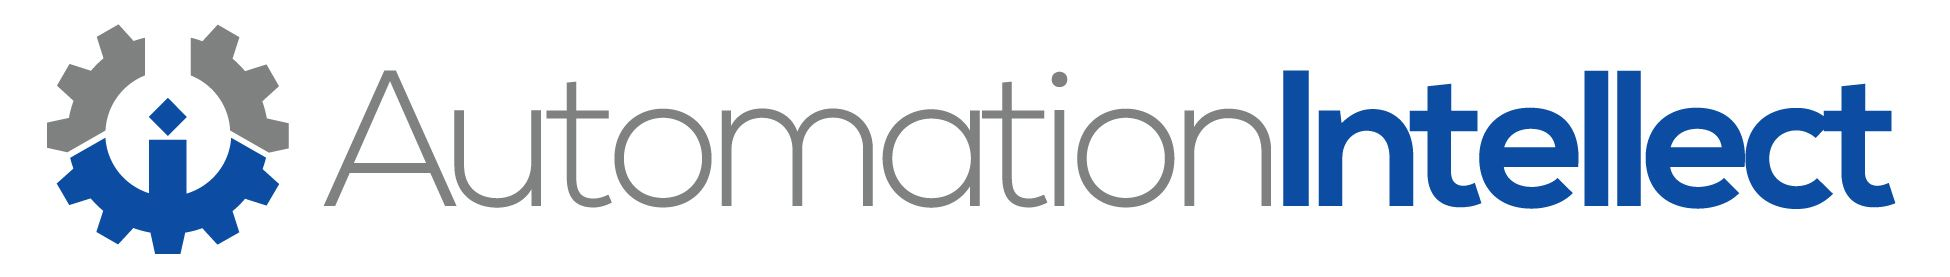 Automation Intellect, Inc. Logo